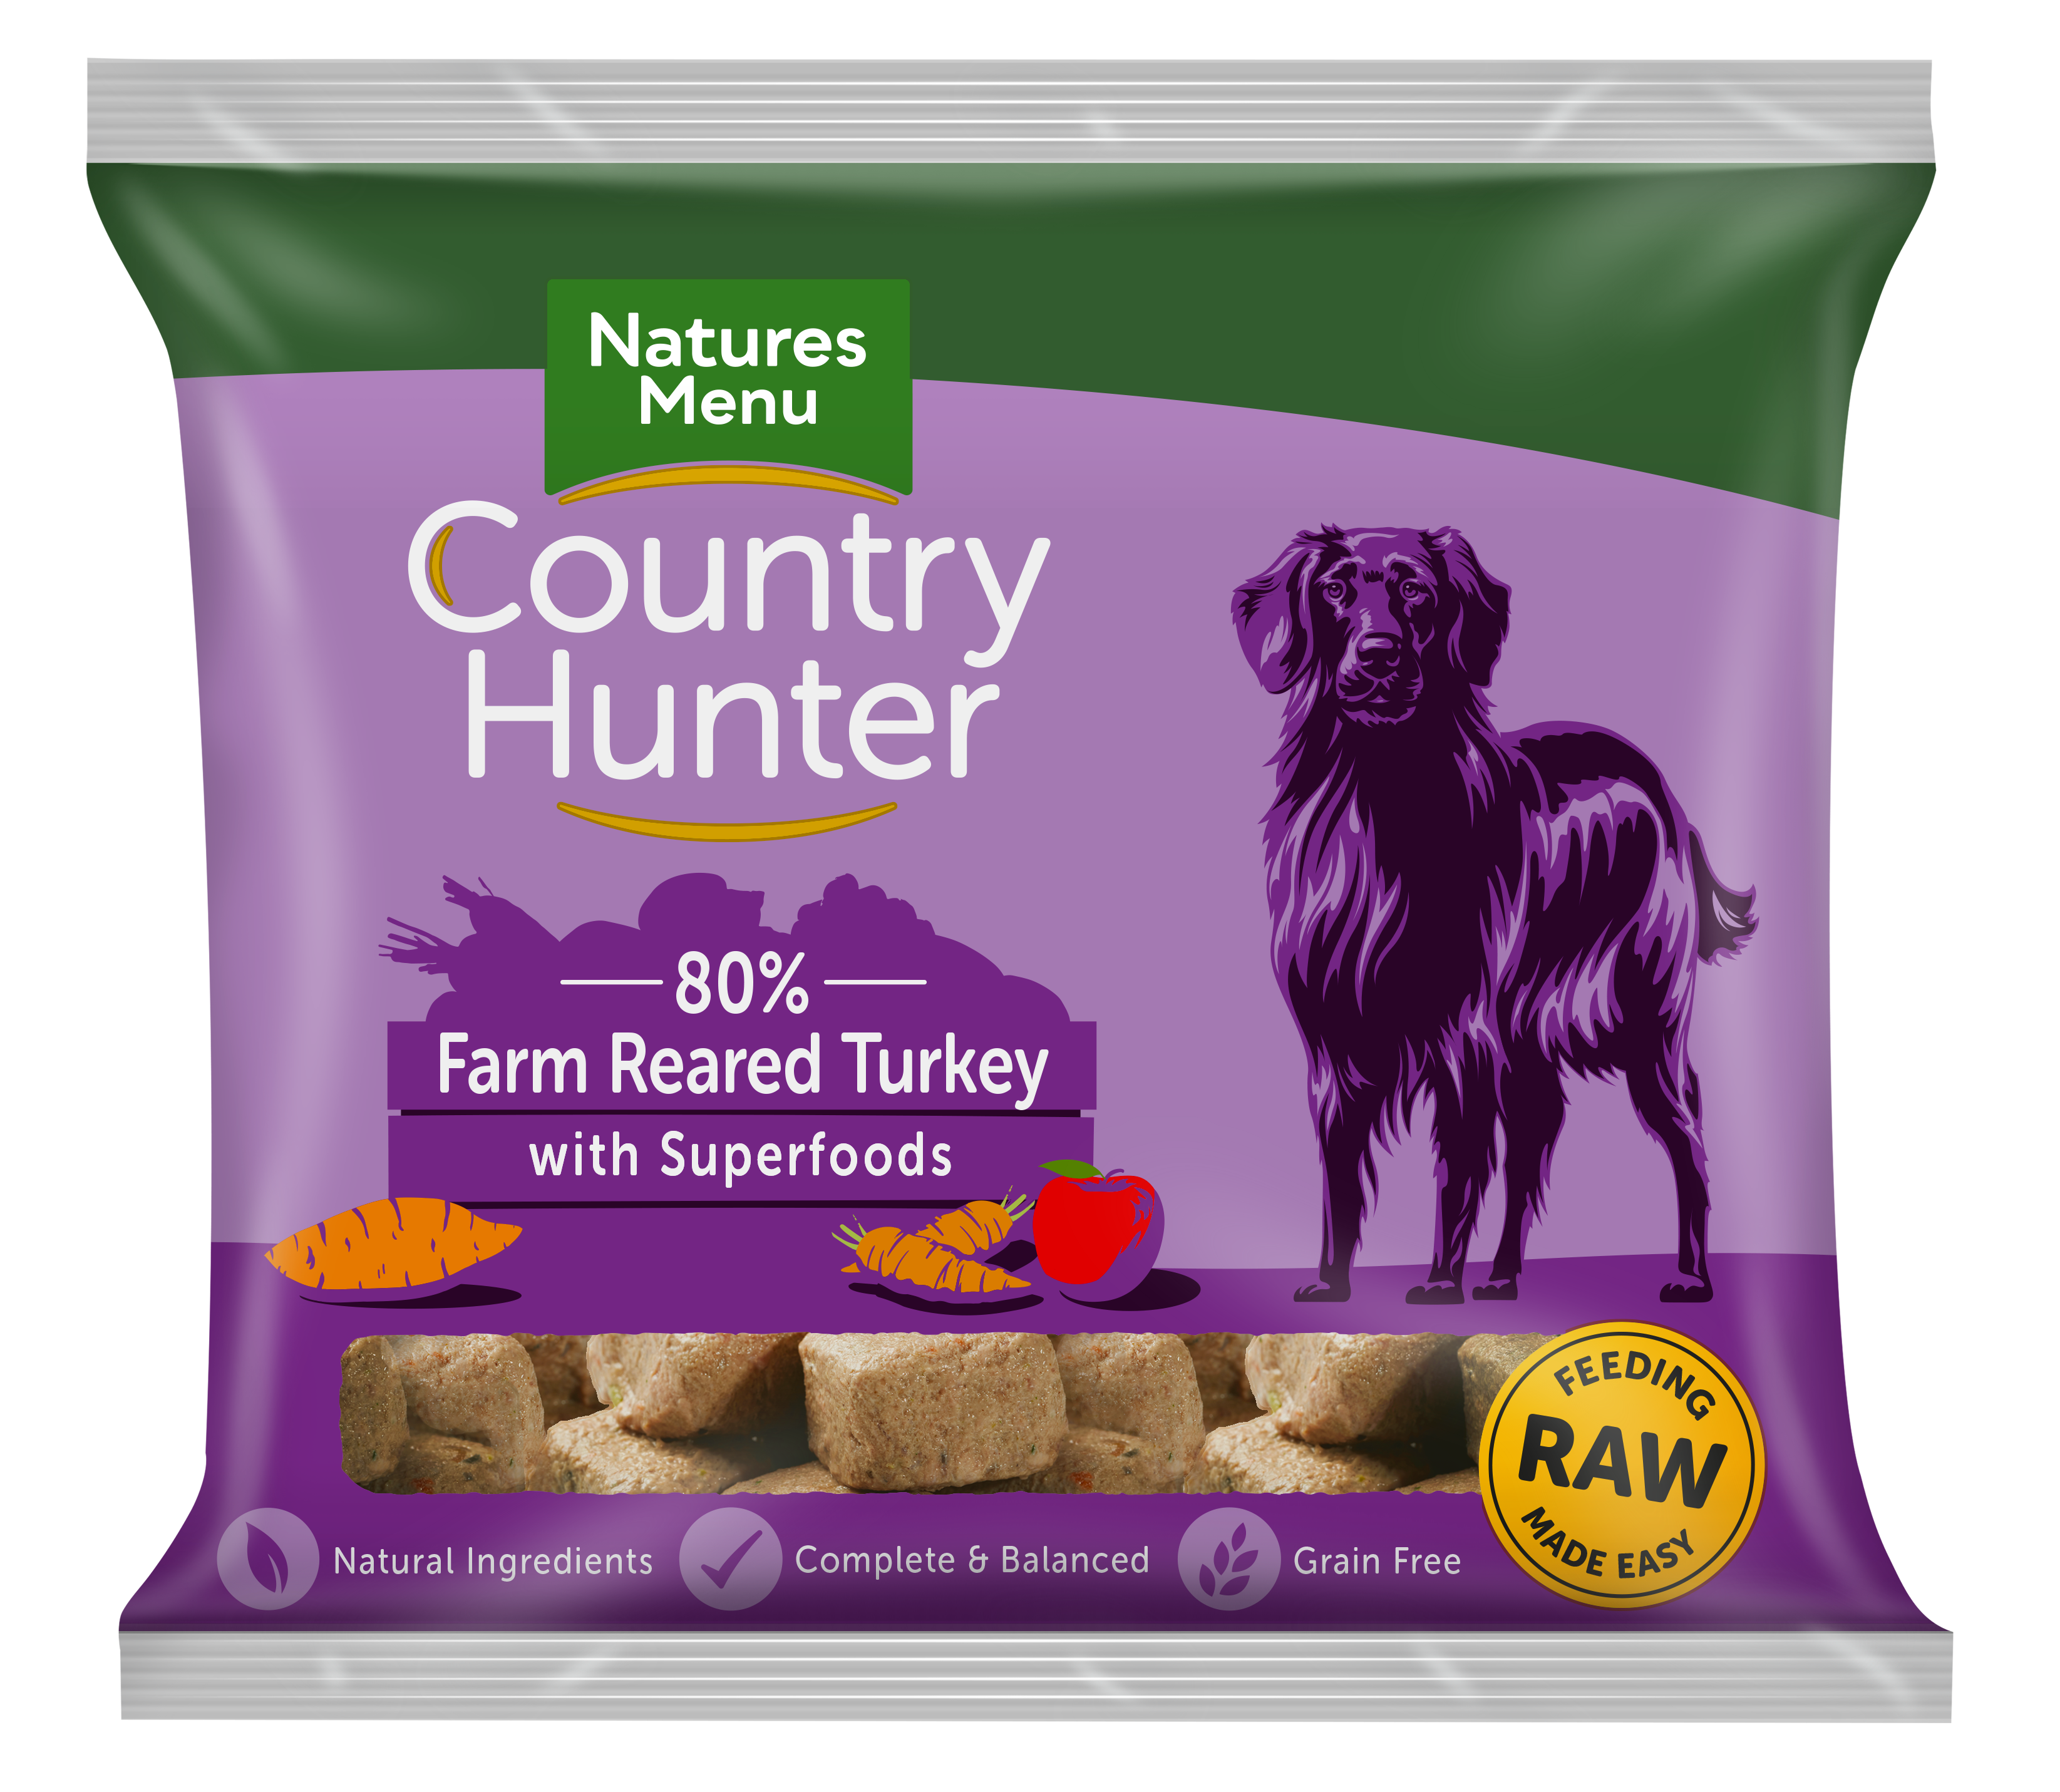 Natures Menu Country Hunter Nuggets Turkey 1kg Bag Front of Pack